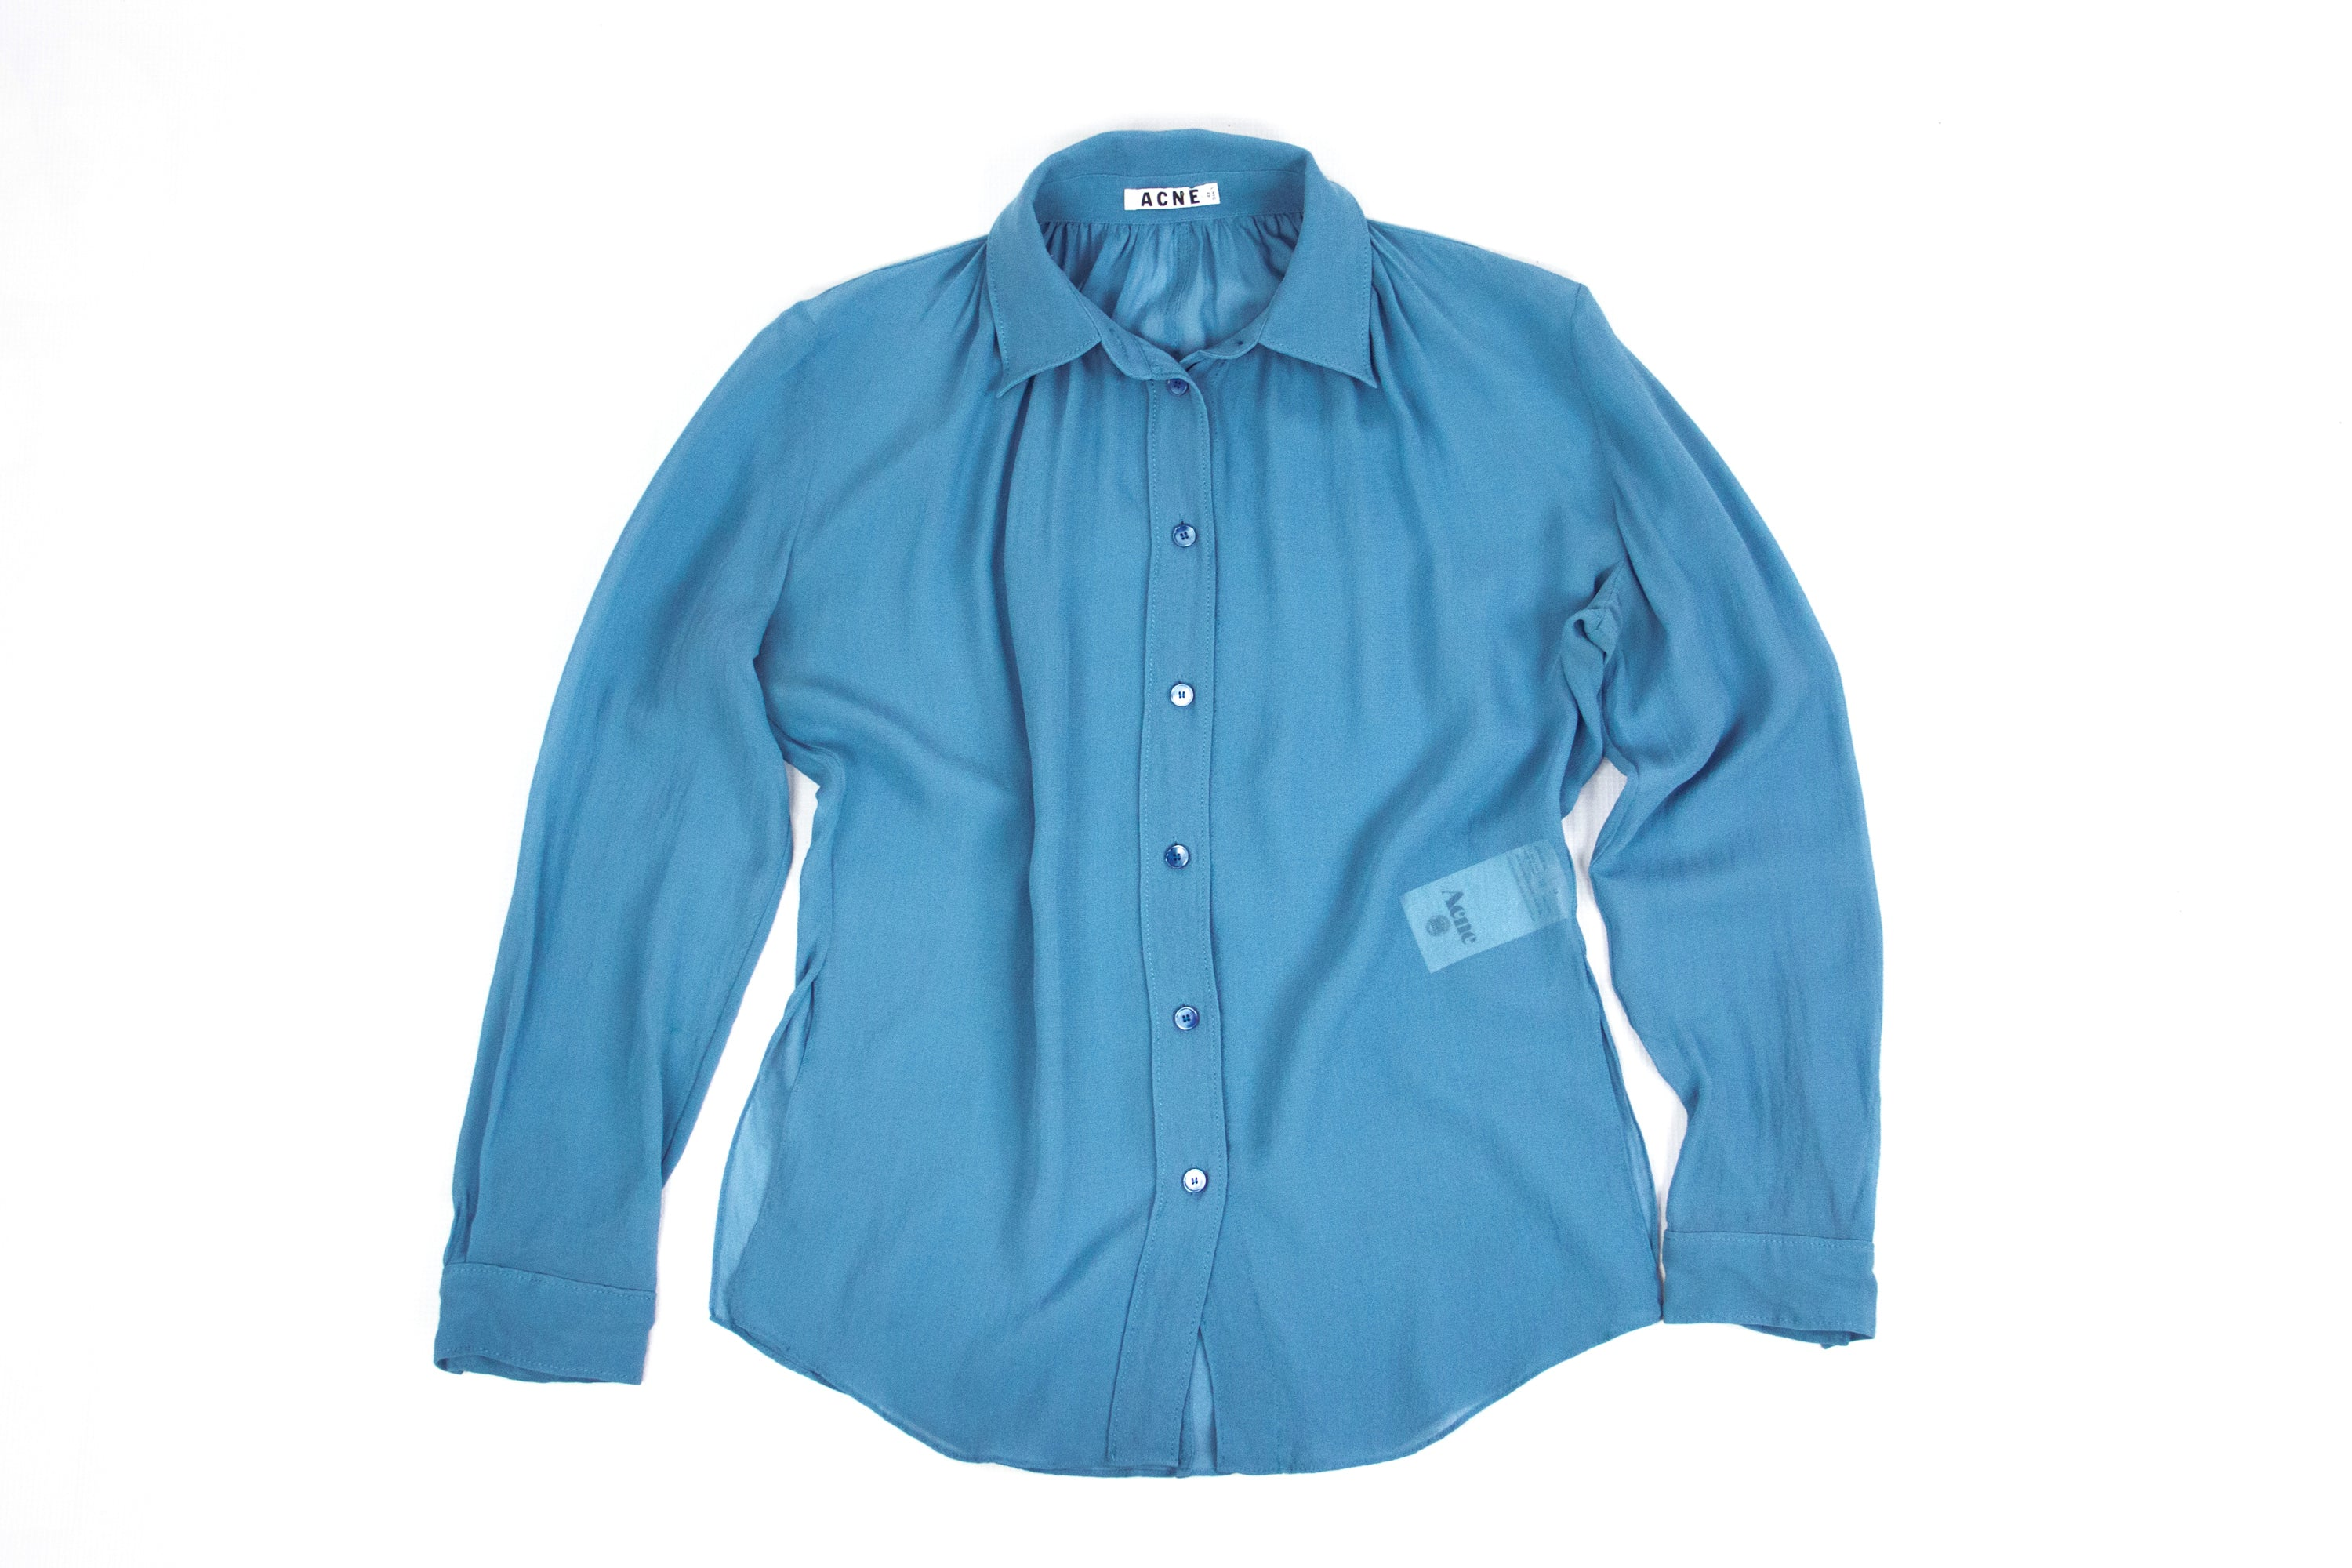 ACNE Teal Blue Adeline Silk Blouse, SIZE 36 - secondfirst